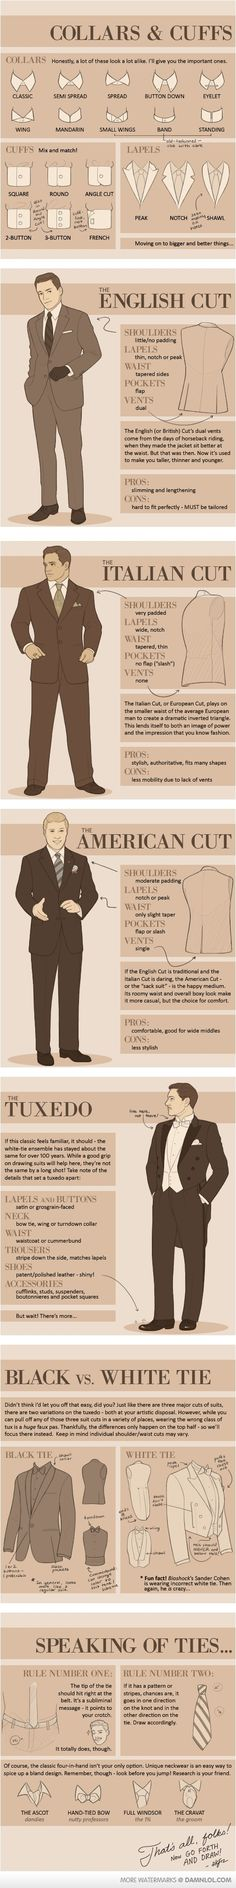 Collars and cuffs men style